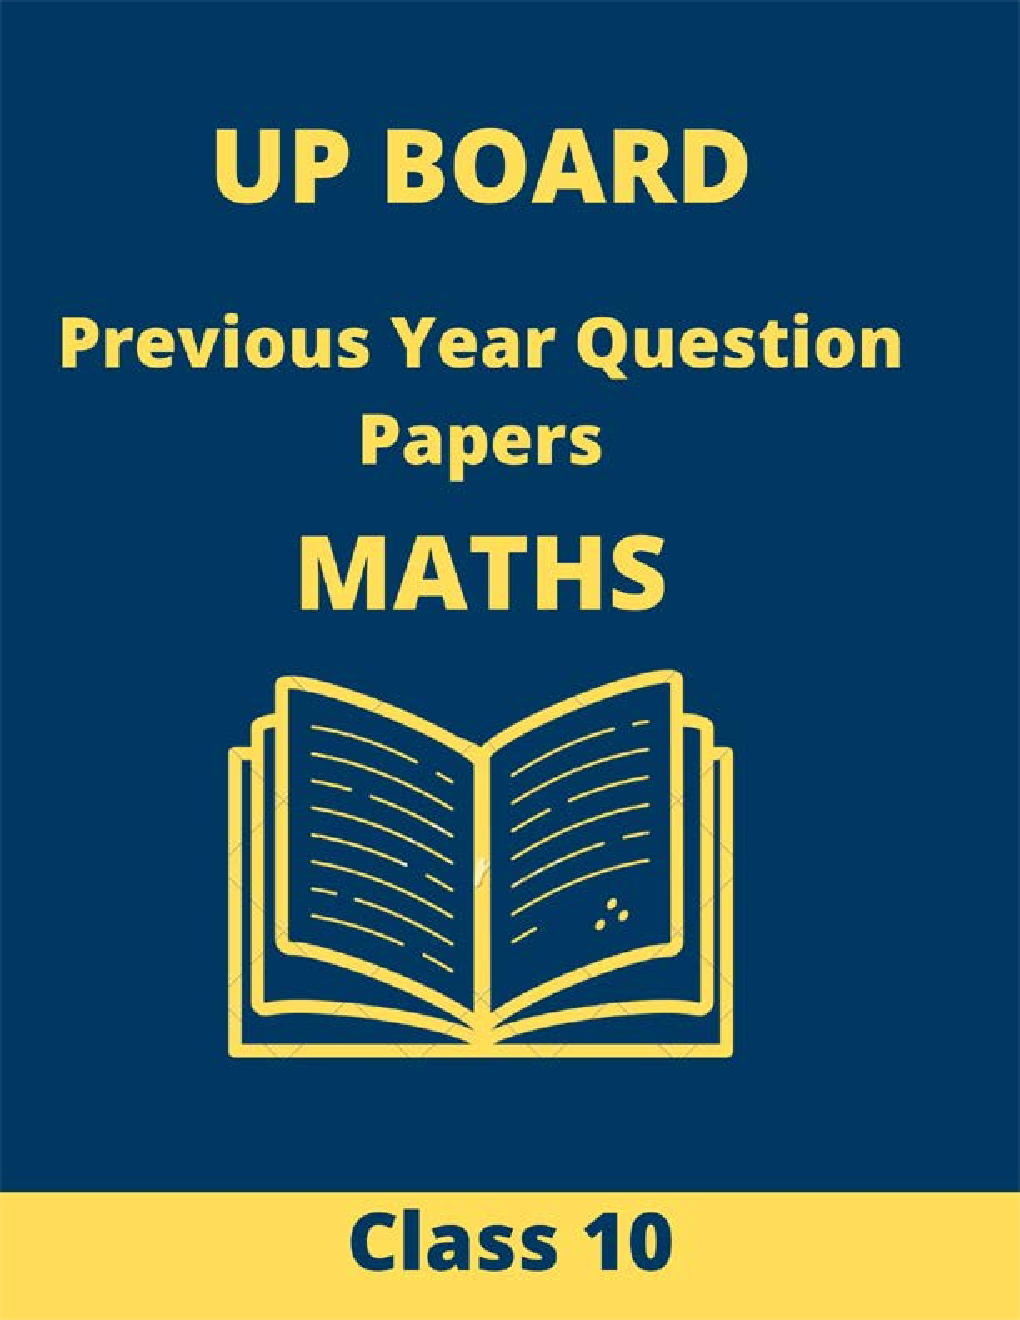 UP Board (2015-2019) Previous Year Question Papers Maths Class 10 - Page 1